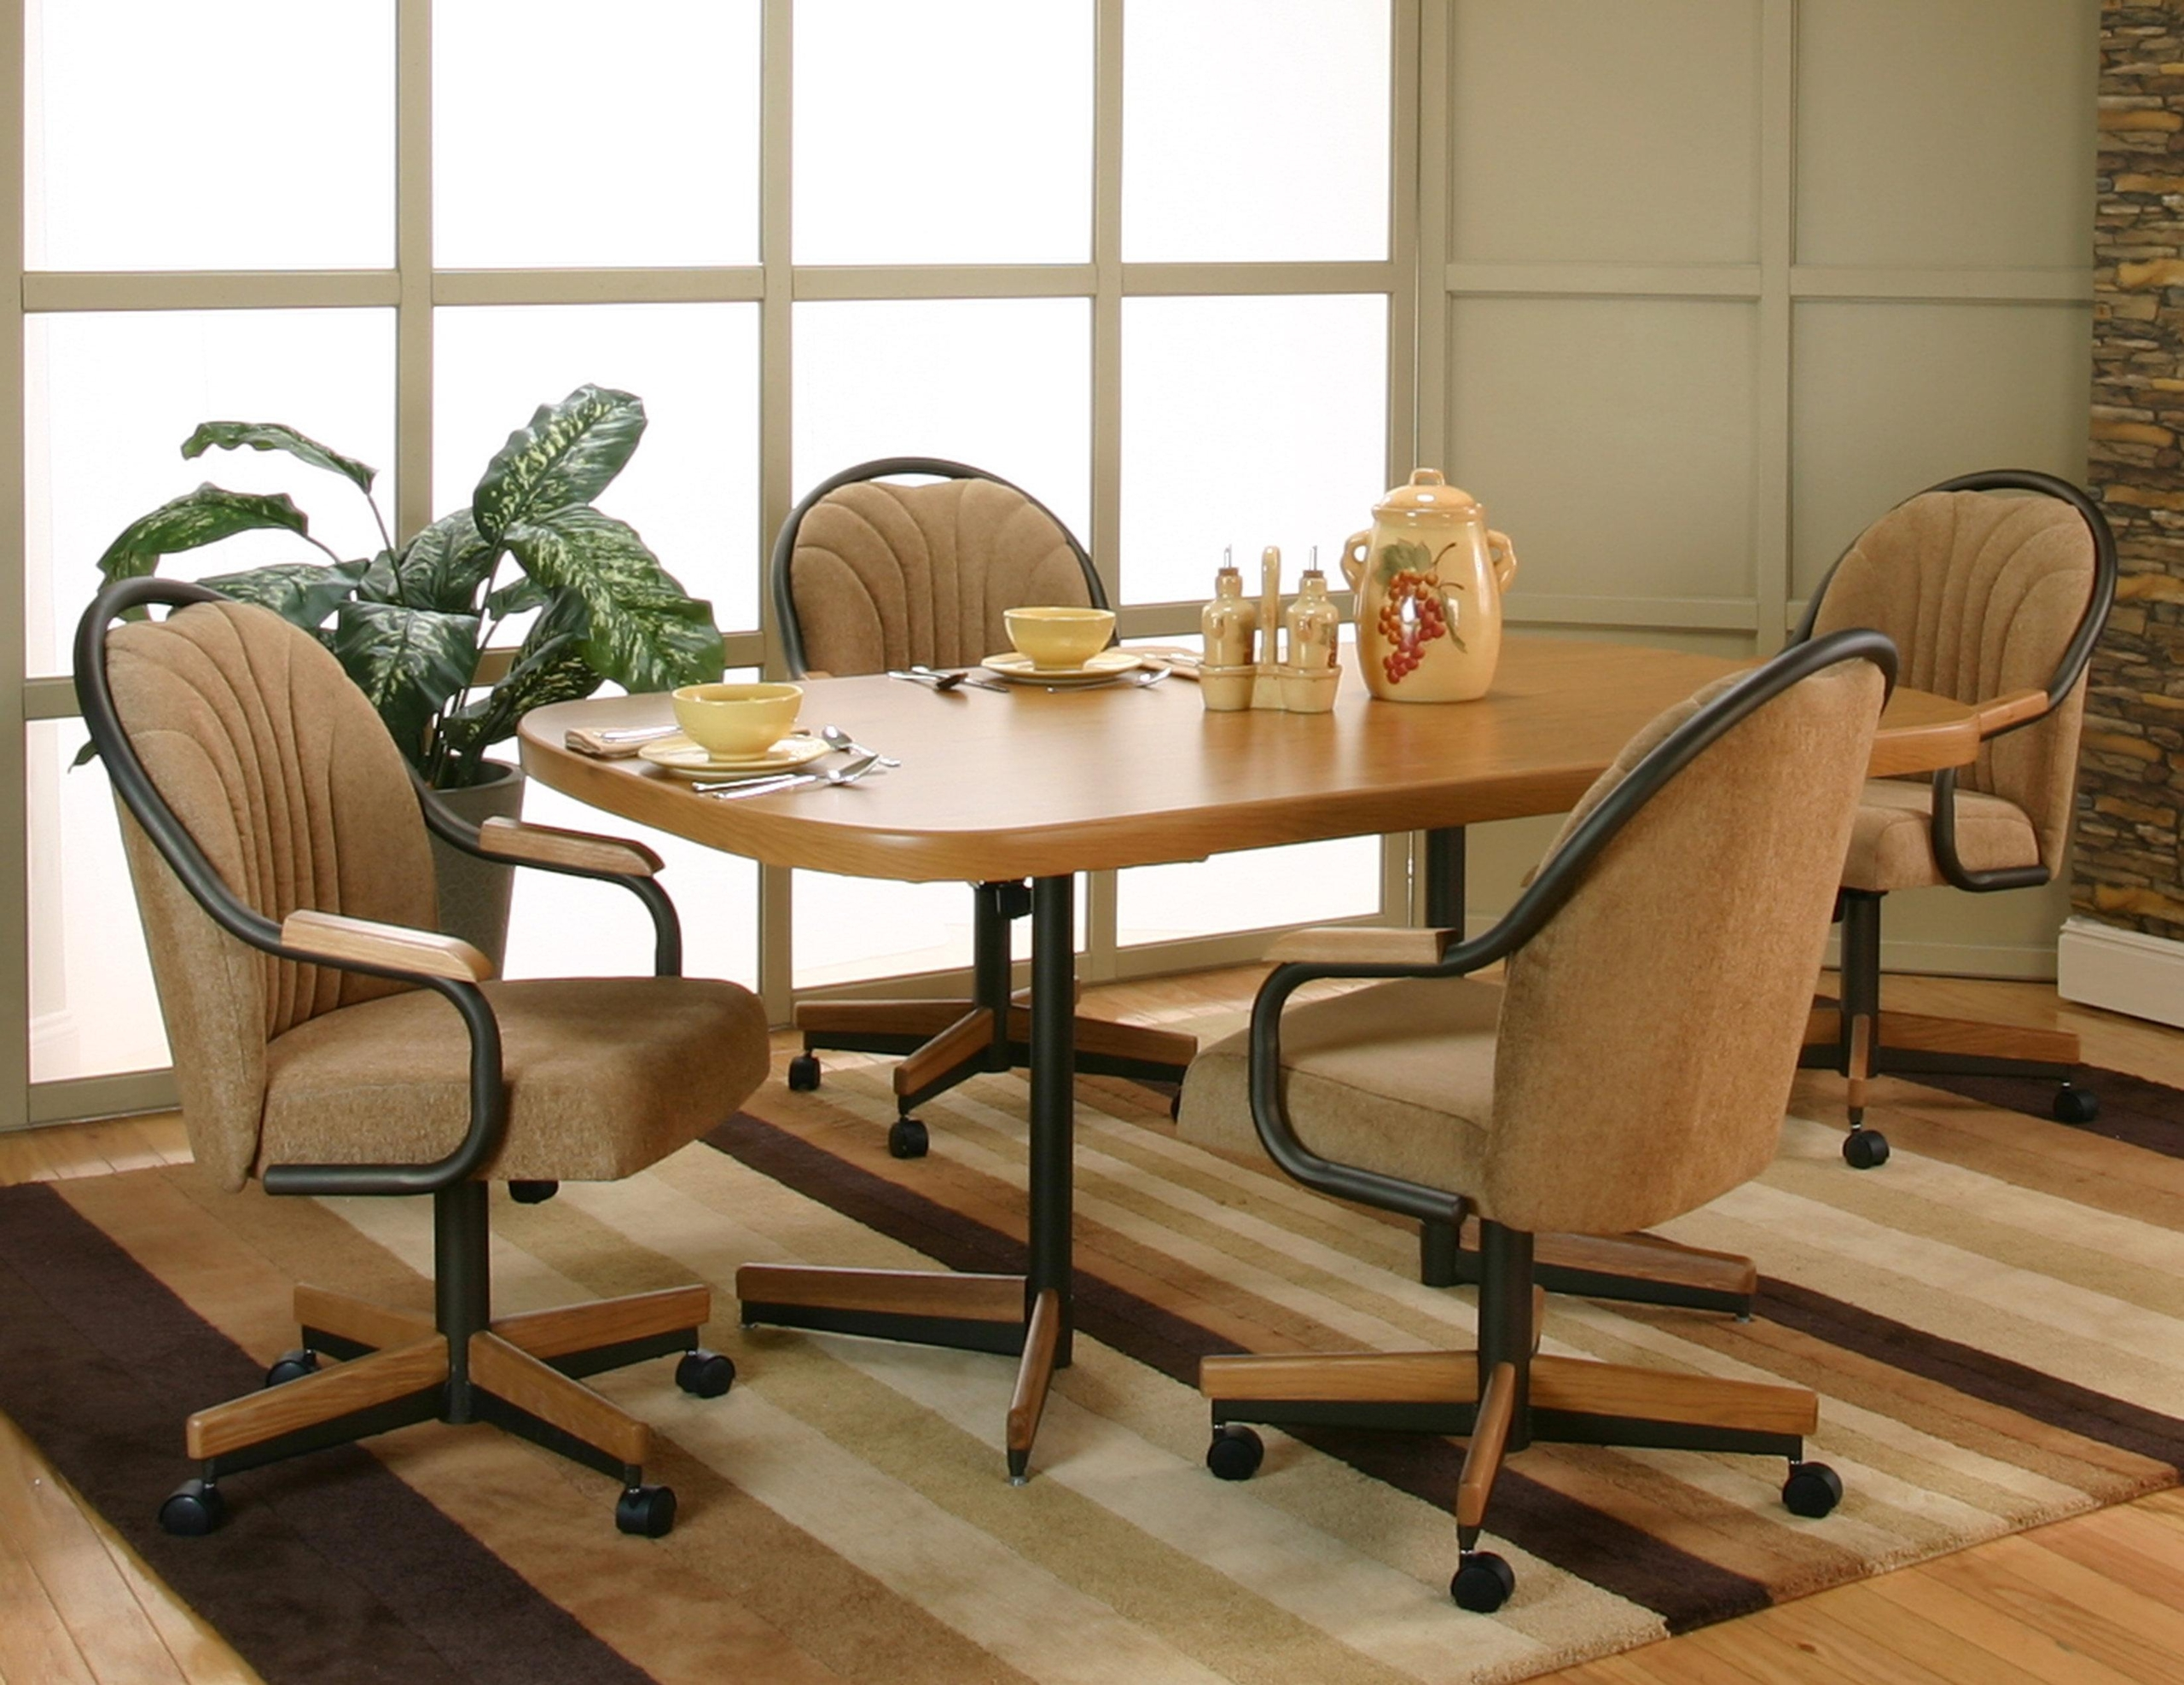 Venta Dining Room Table And Chairs, Dining Room Chairs With Wheels